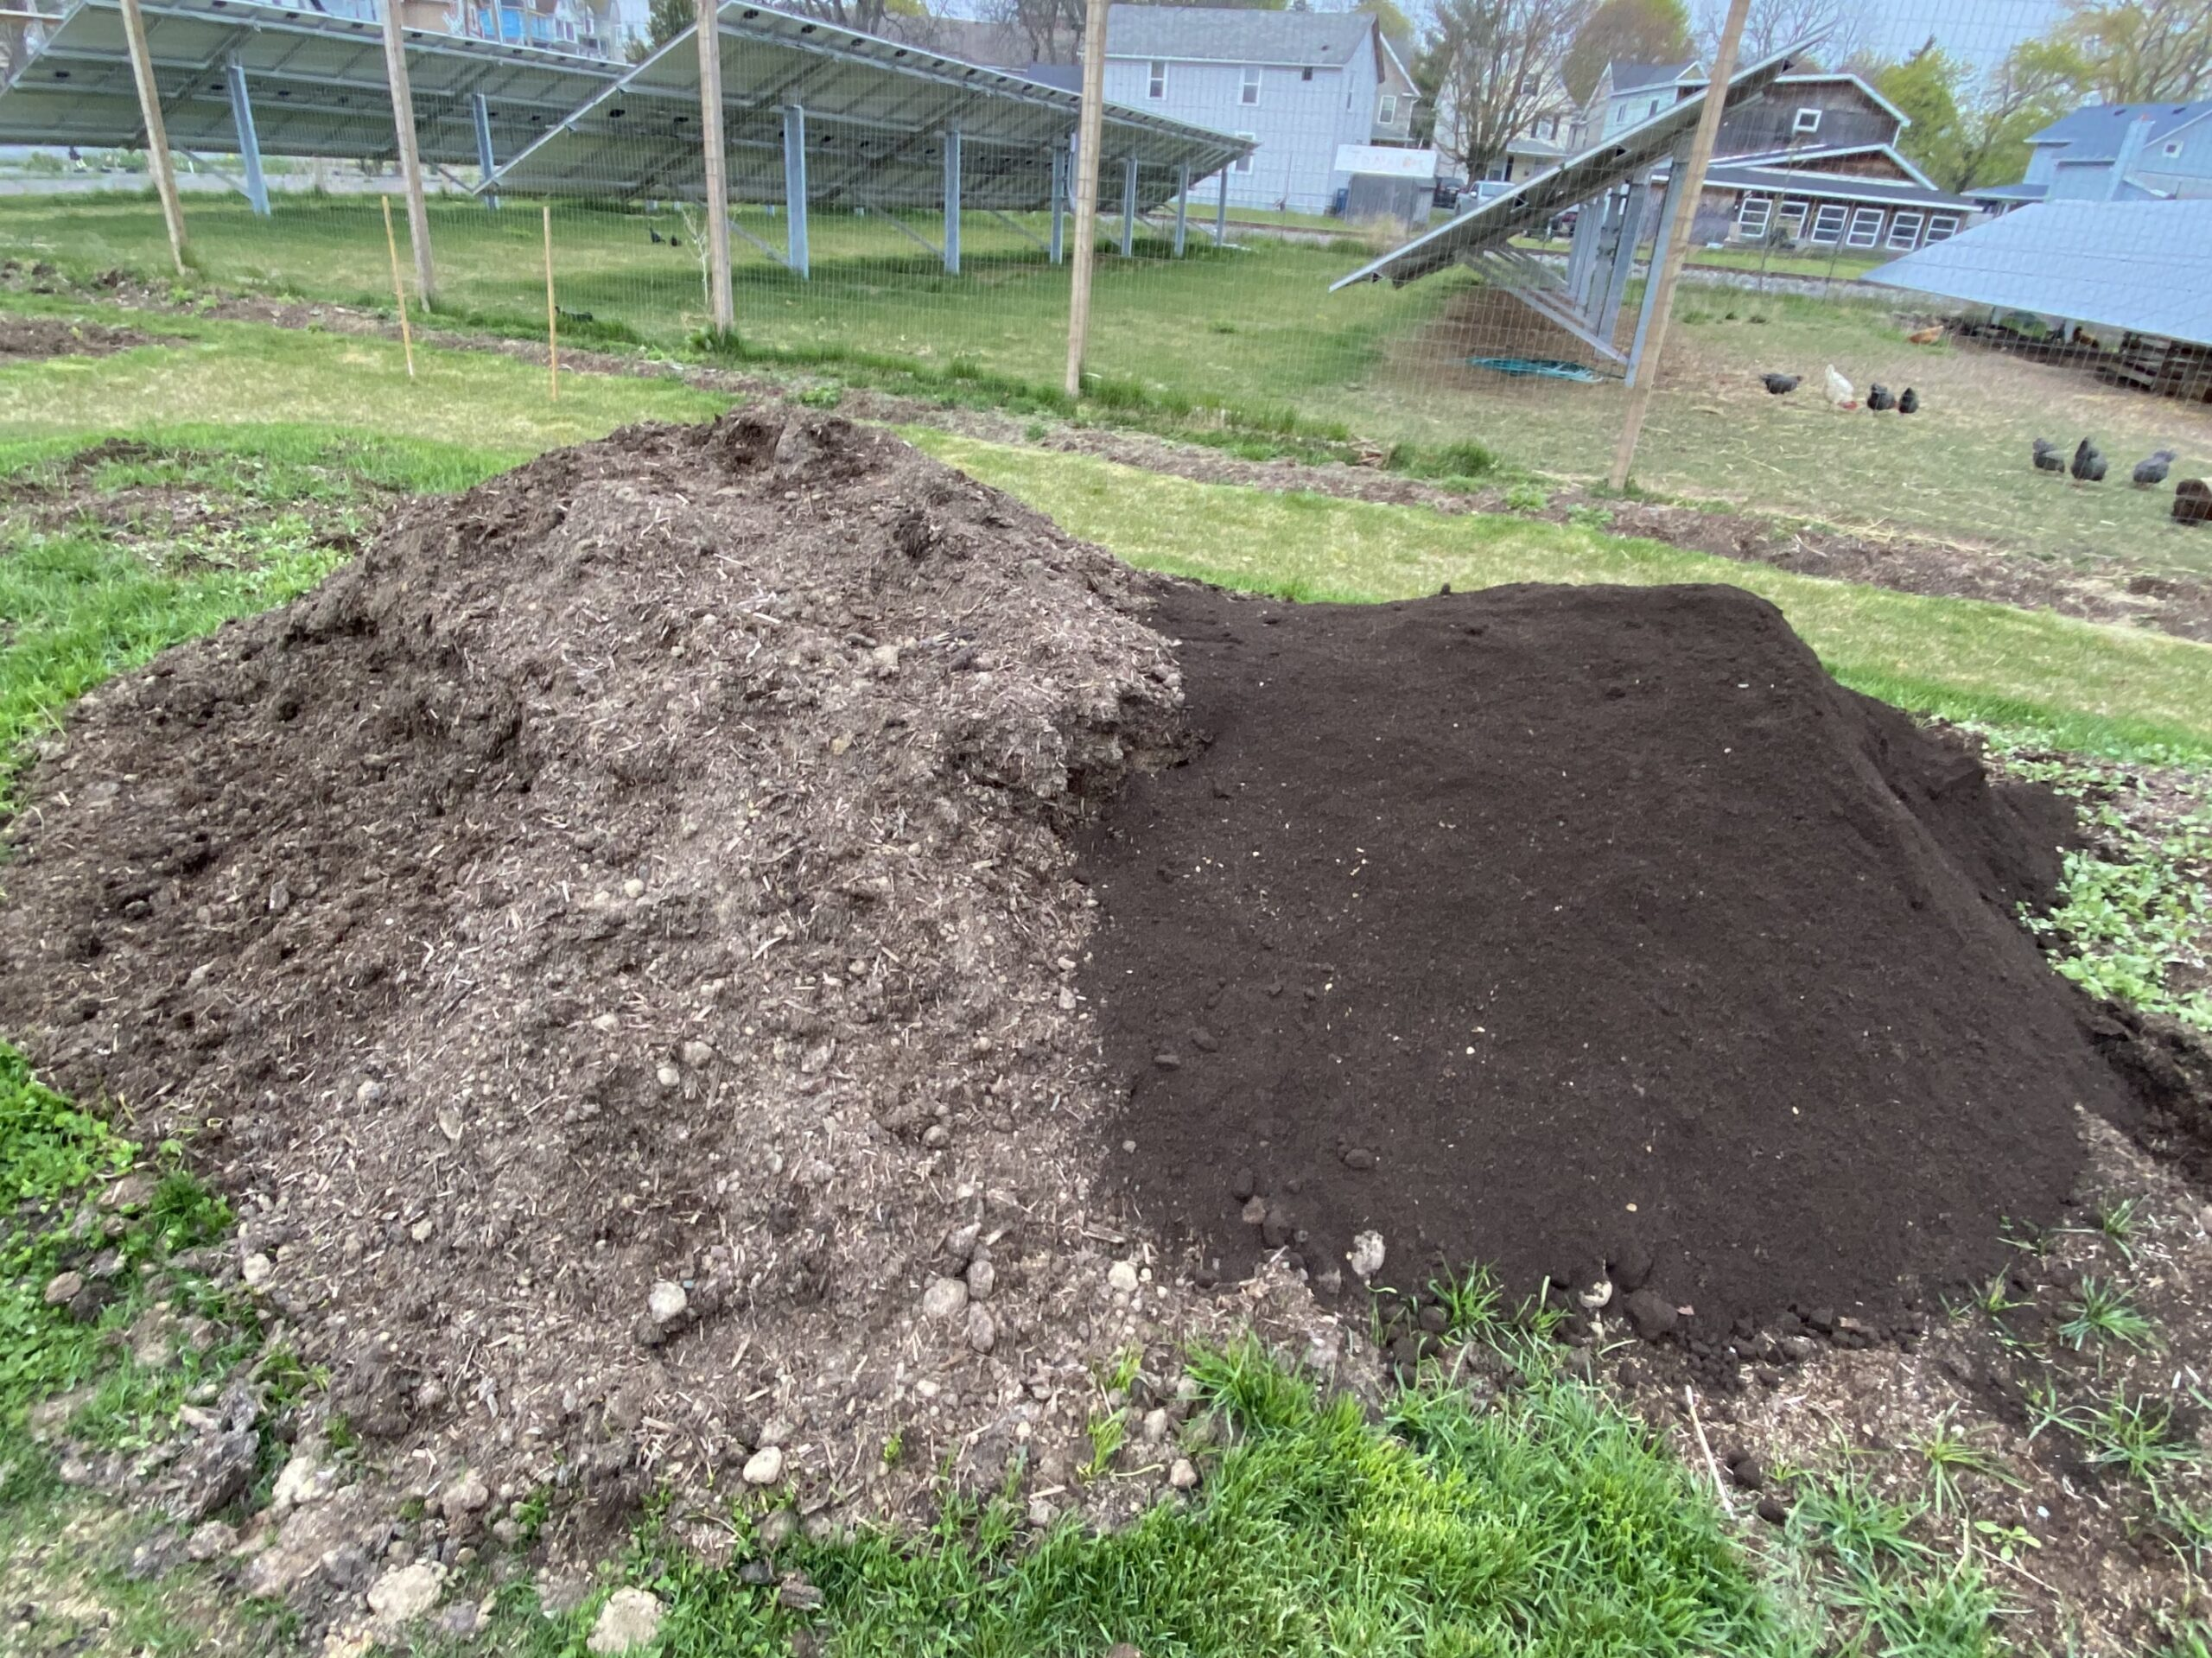 difference between healthy soil and unhealthy soil